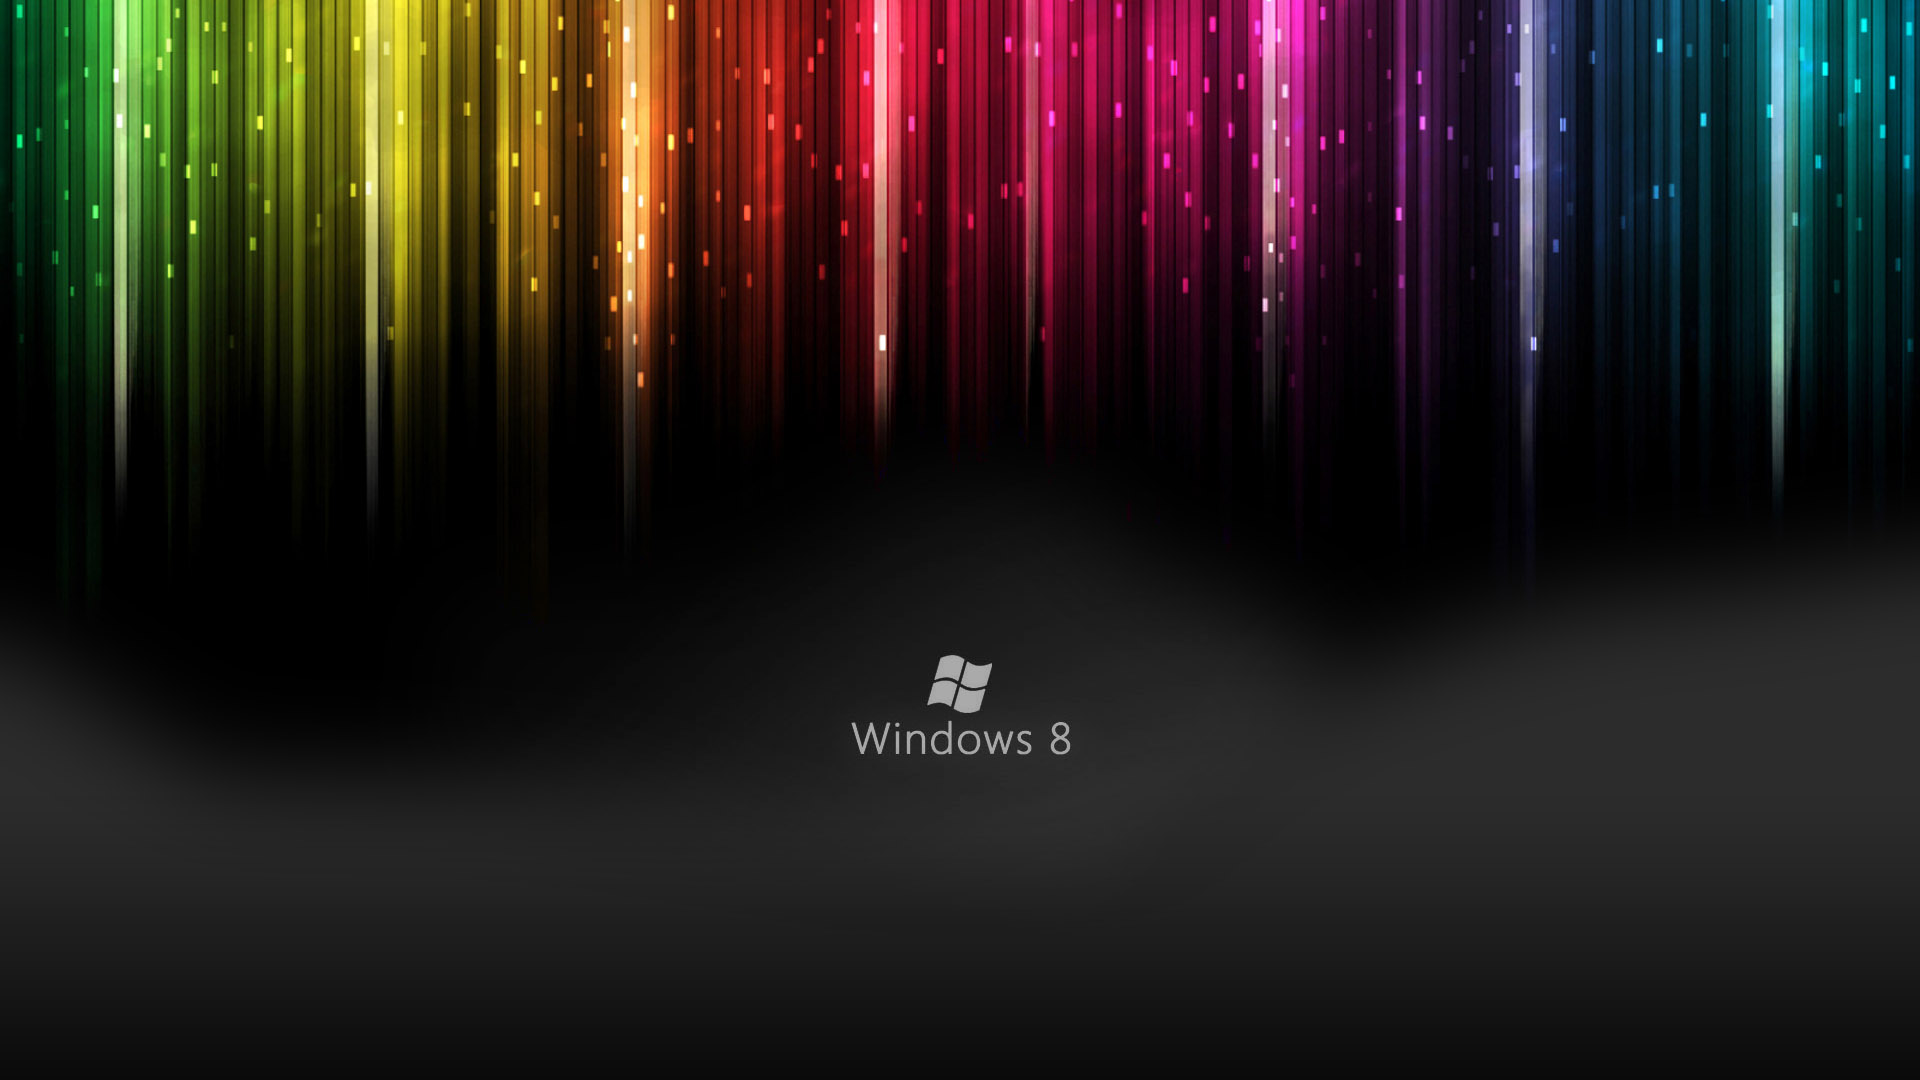 live wallpapers for windows 8 - wallpapersafari